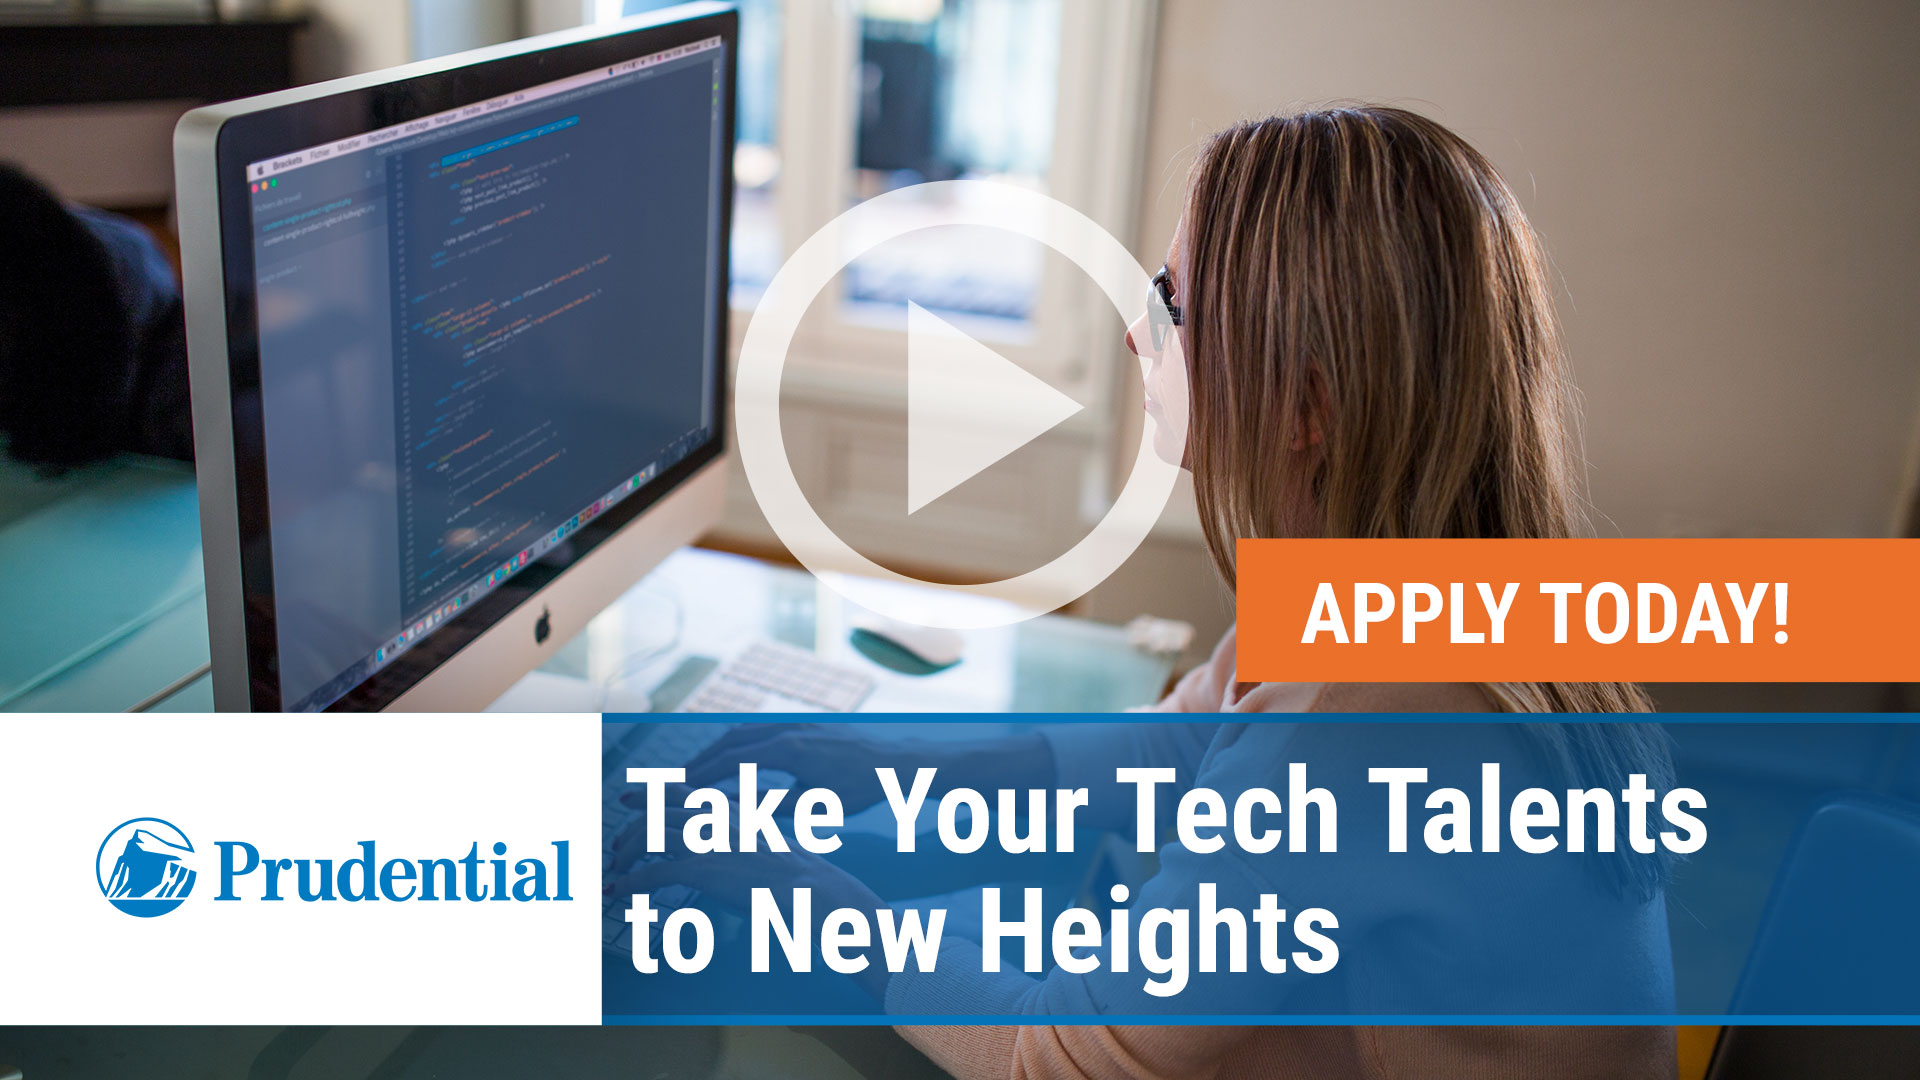 Watch our careers video for available job opening Take Your Tech Talents to New Heights in Dresher PA, Roseland NJ